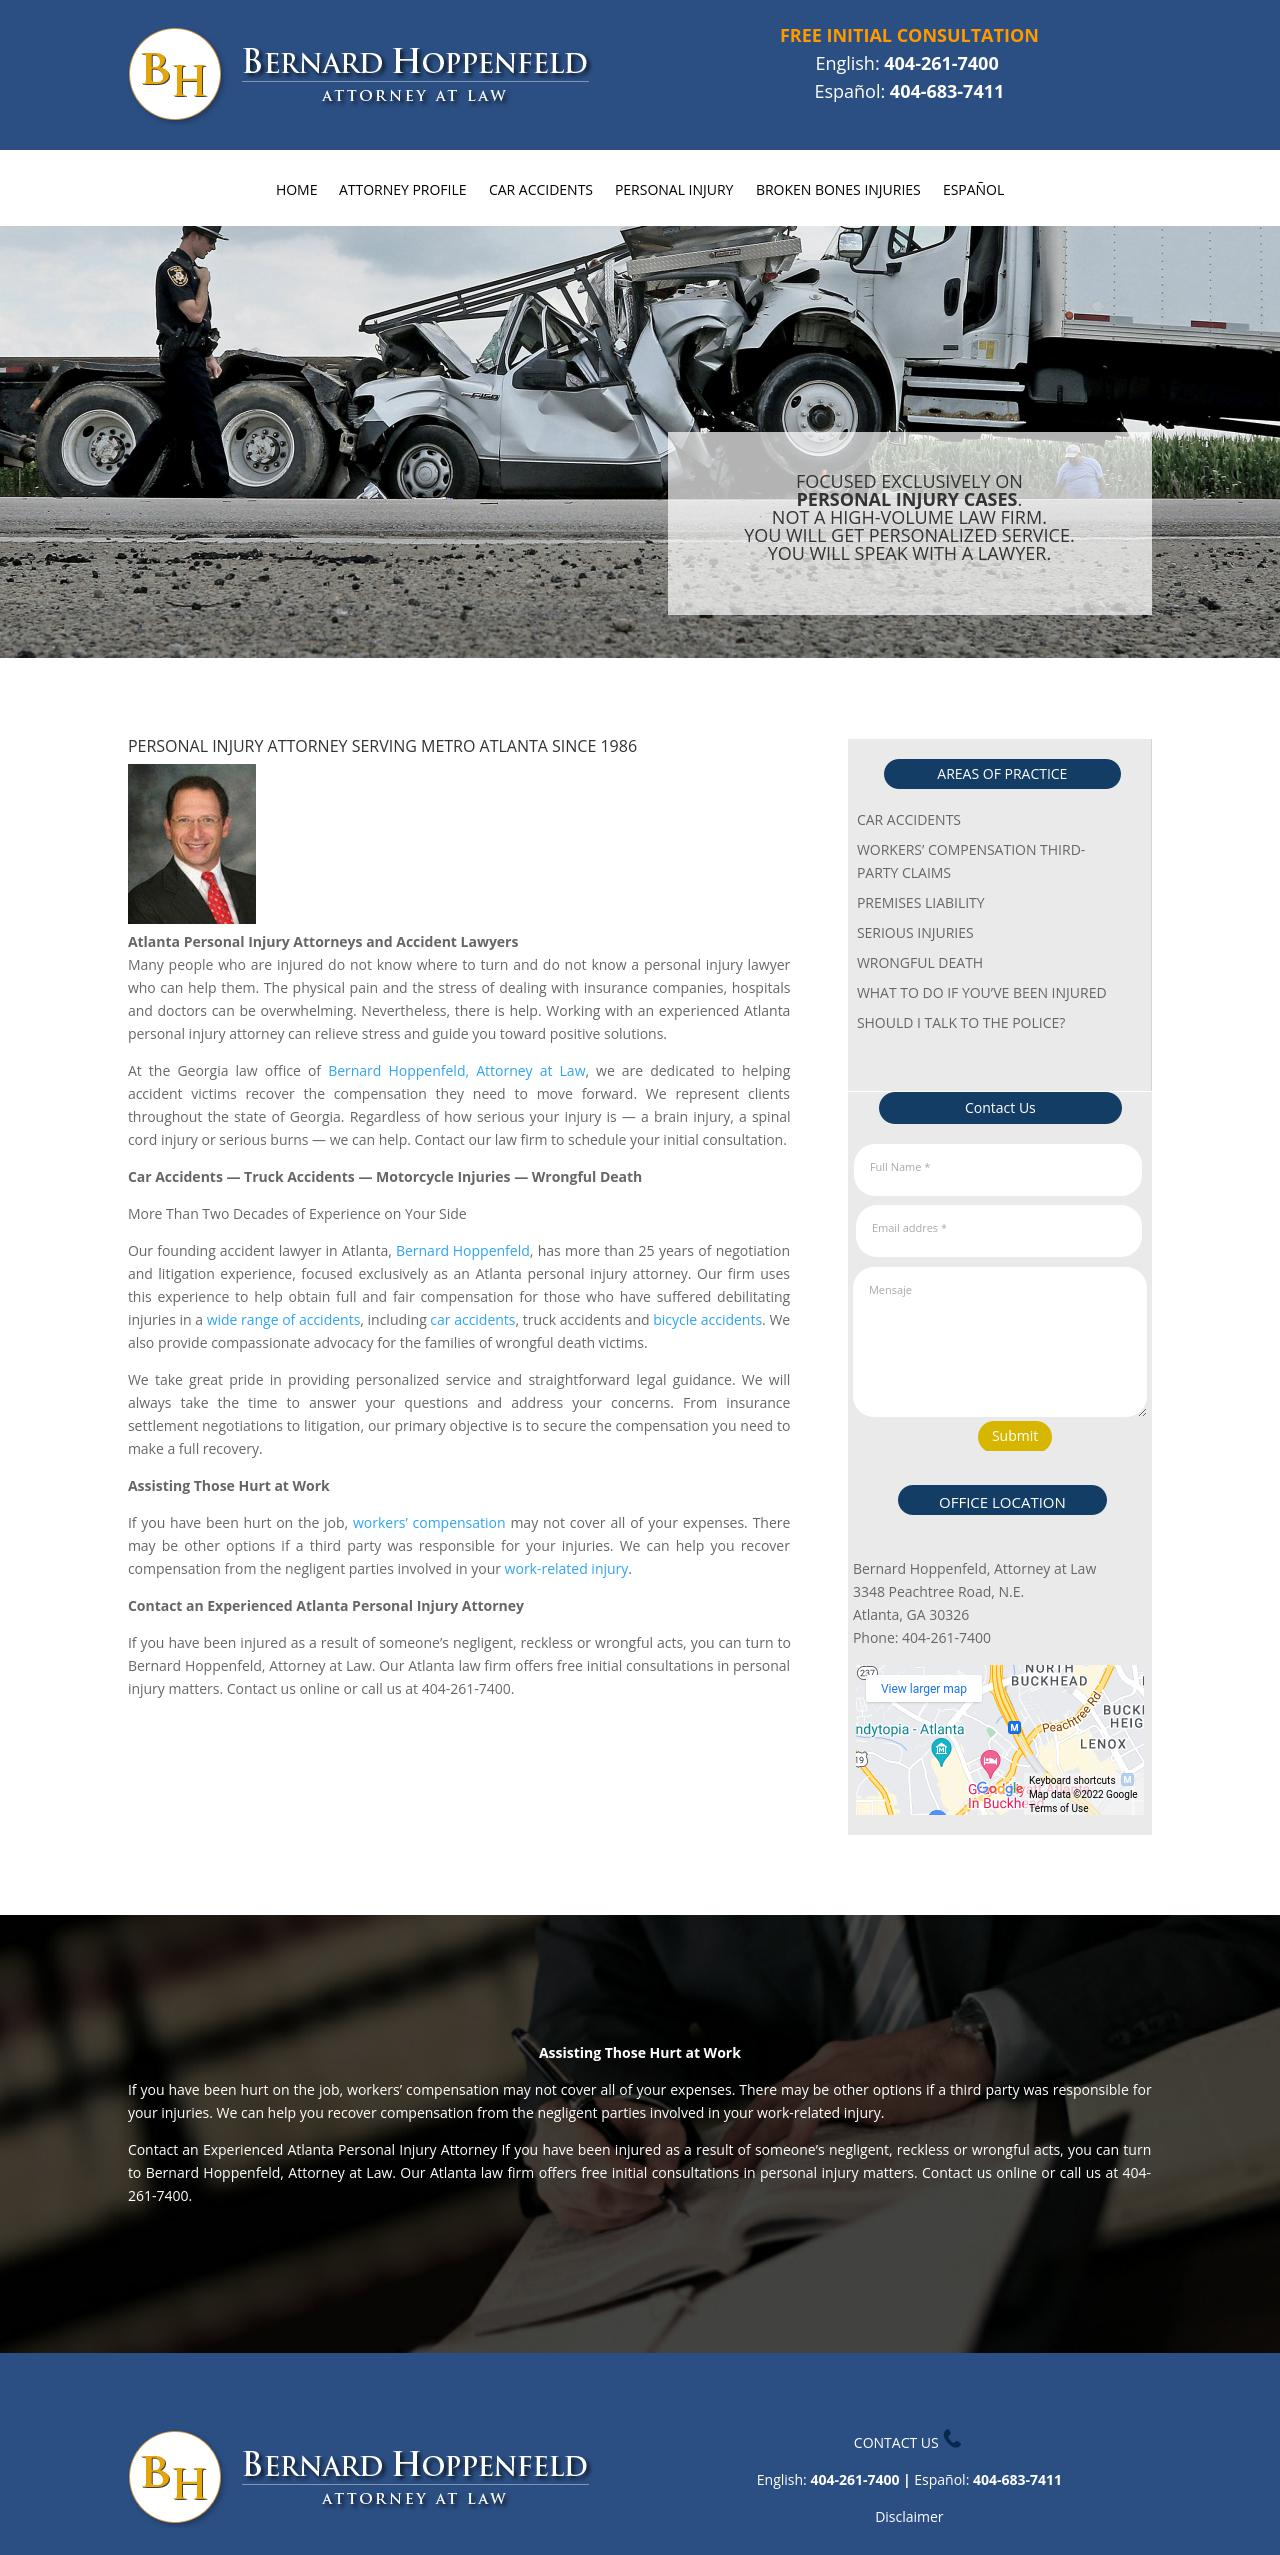 Bernard Hoppenfeld, Attorney at Law - Atlanta GA Lawyers